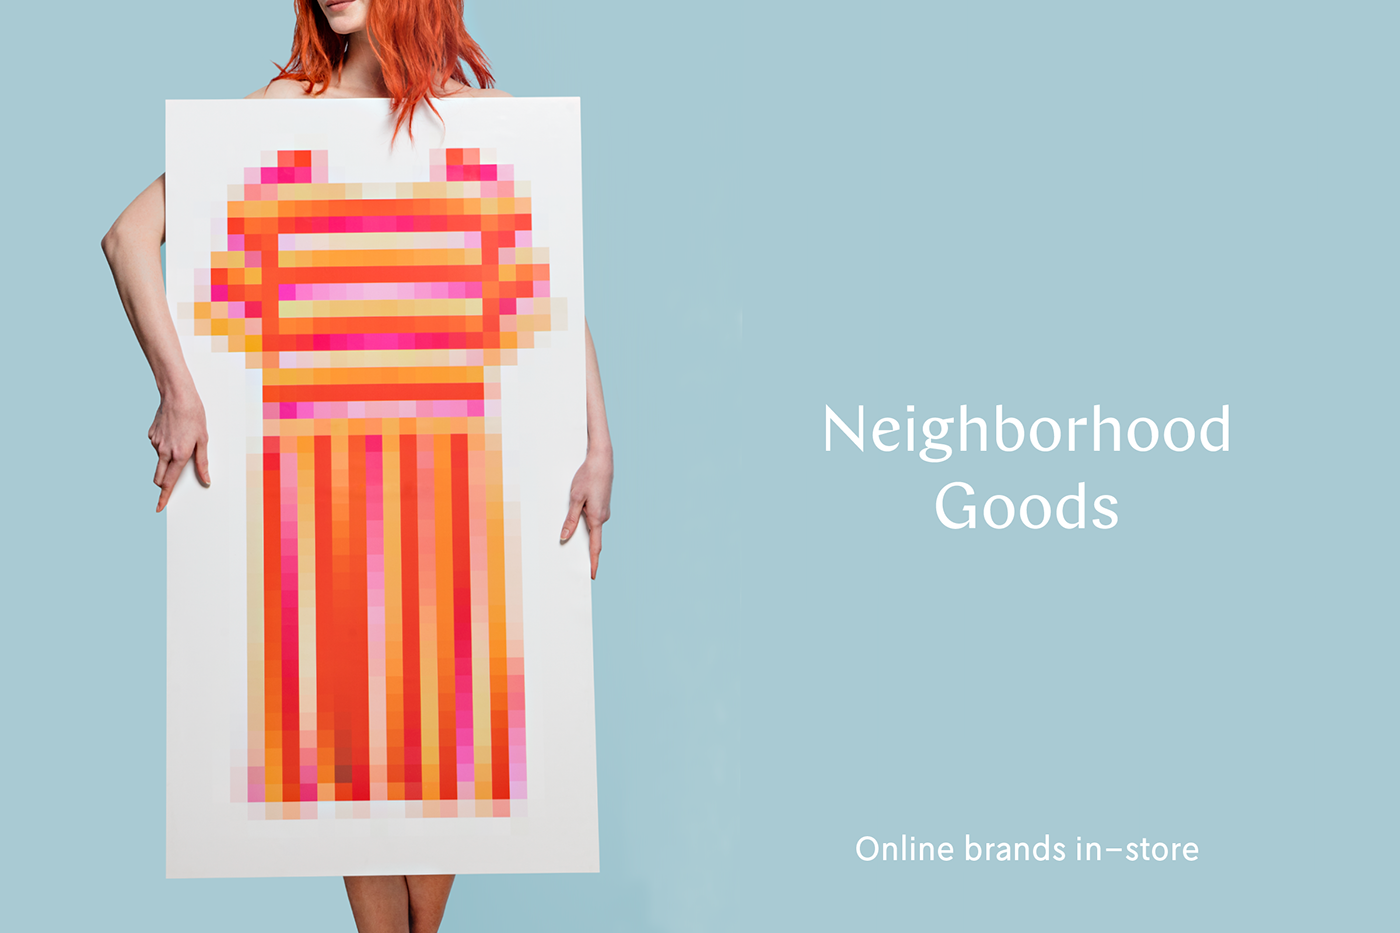 Photography  neighborhood goods online shopping Retail Tractorbeam funny clever Concepting texas